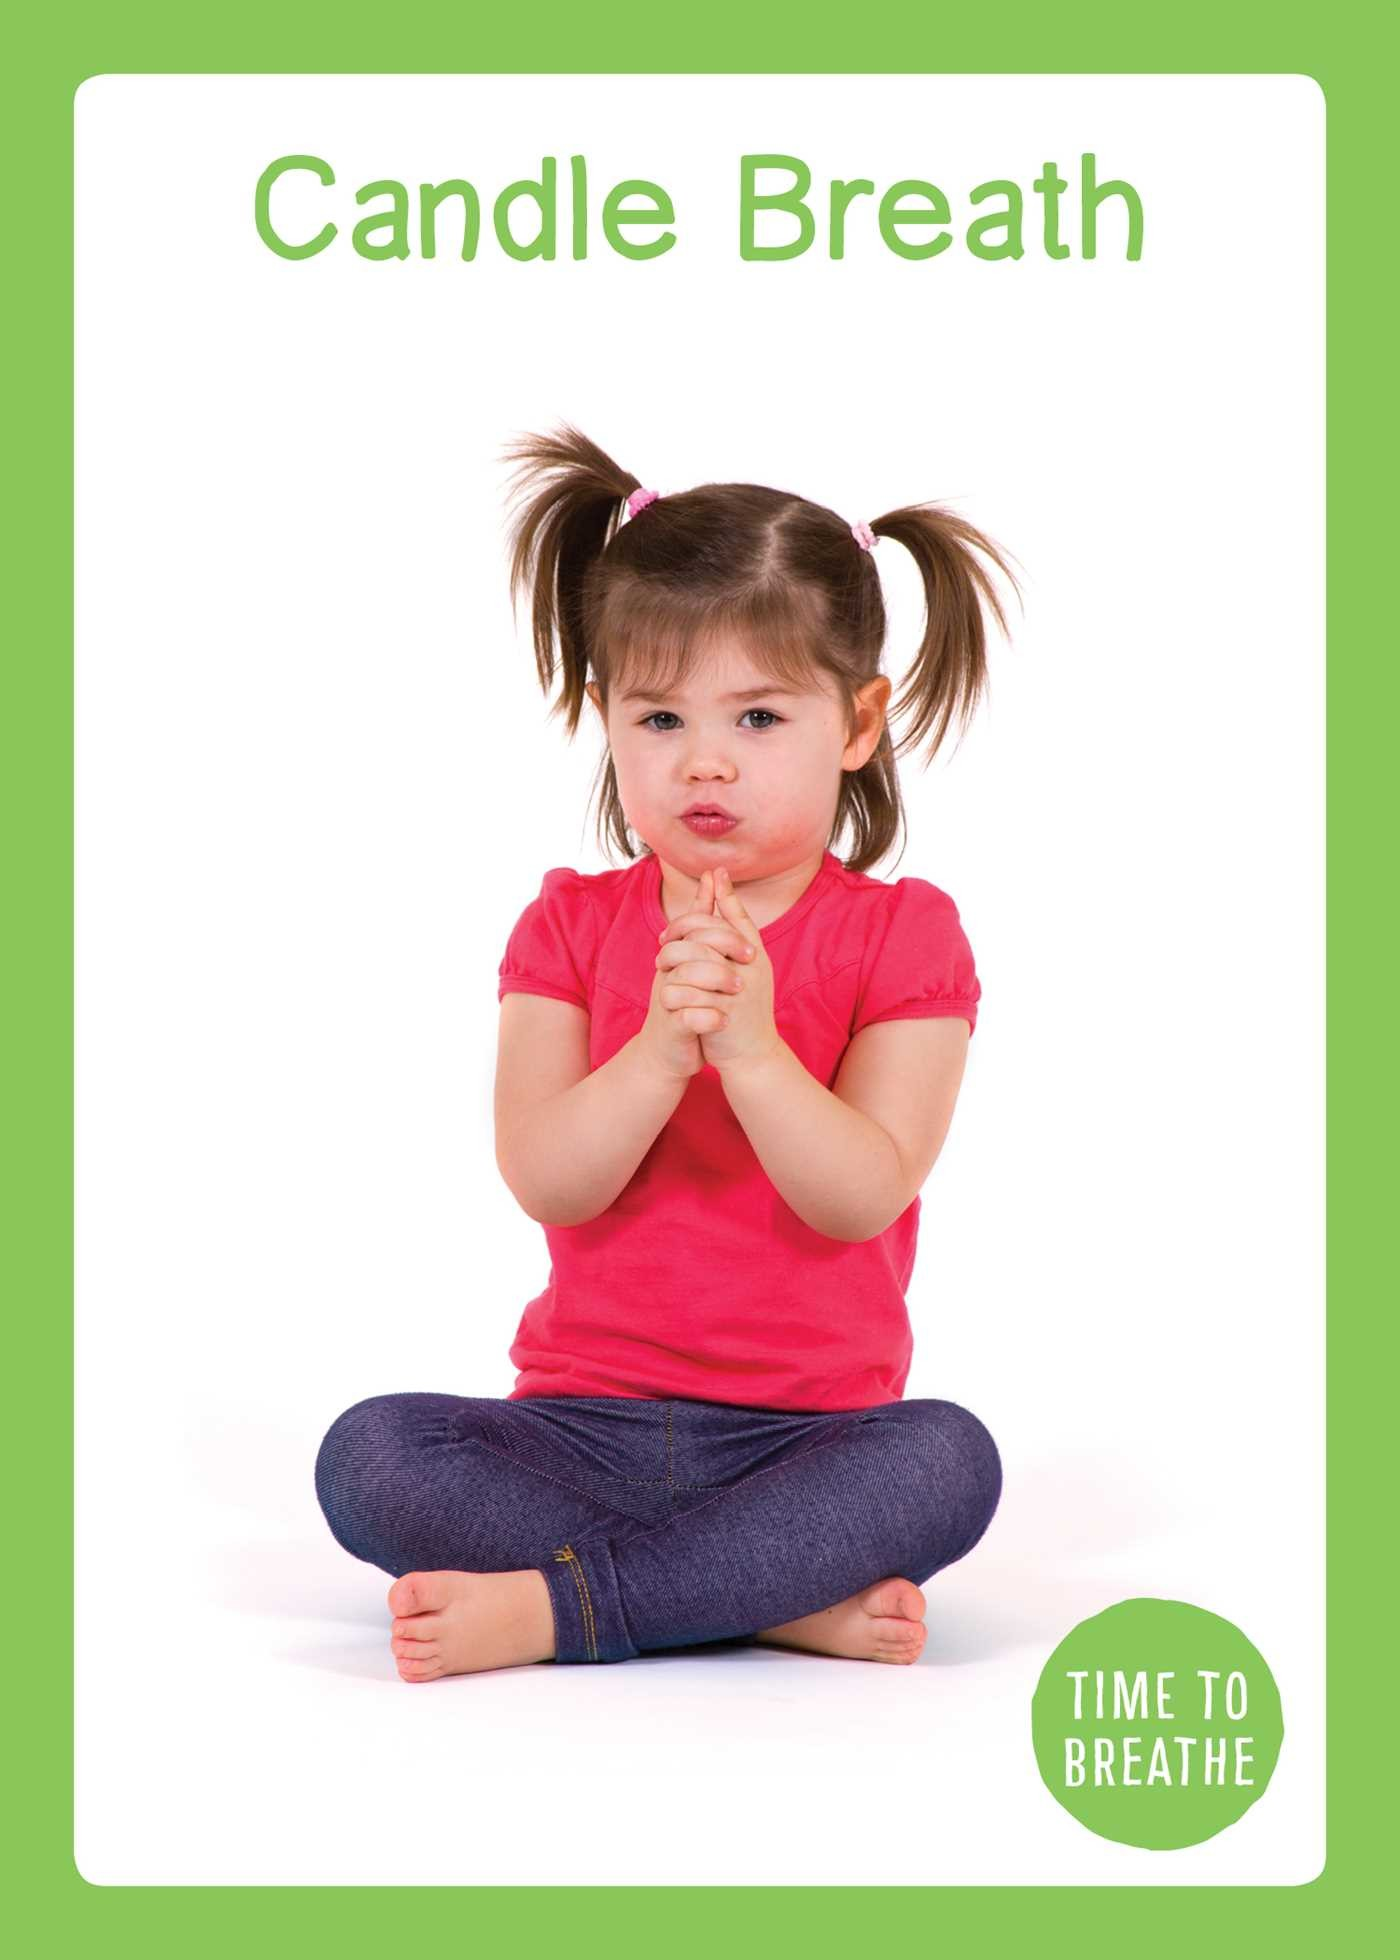 Yoga for children yoga cards 9781507208236.in01